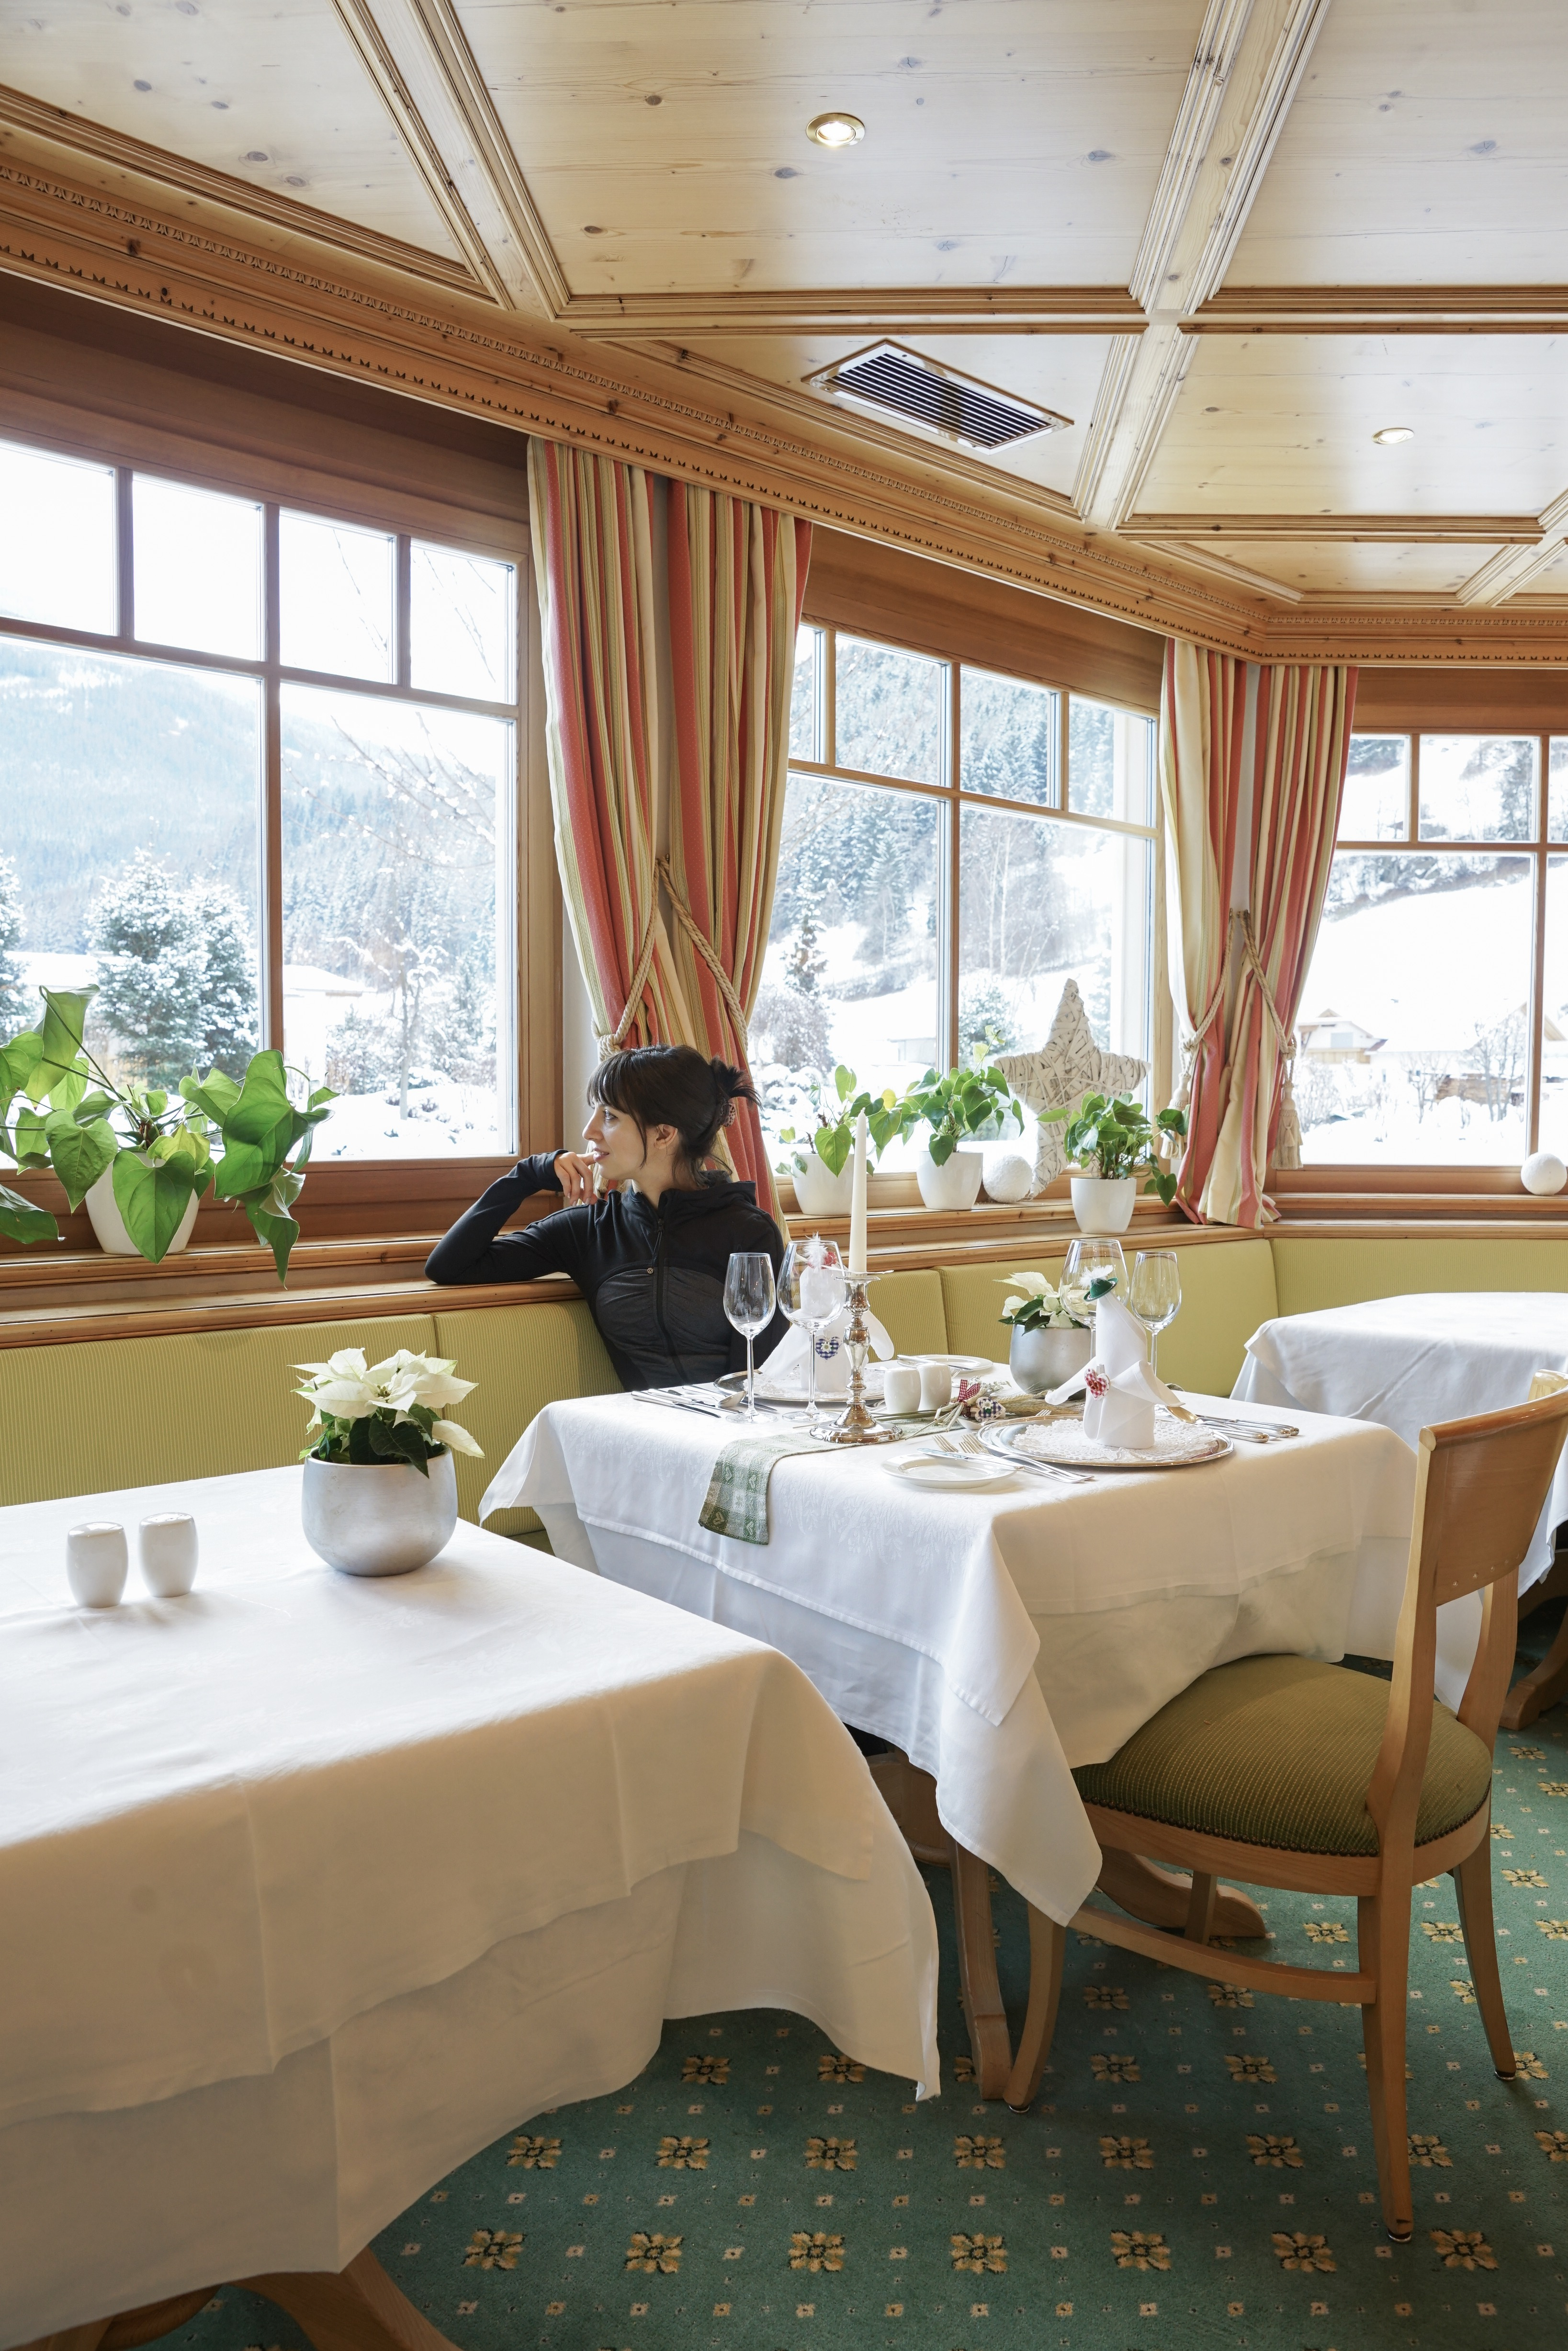 Gourmet Gluten Free in South Tyrol at Alpen Palace 2